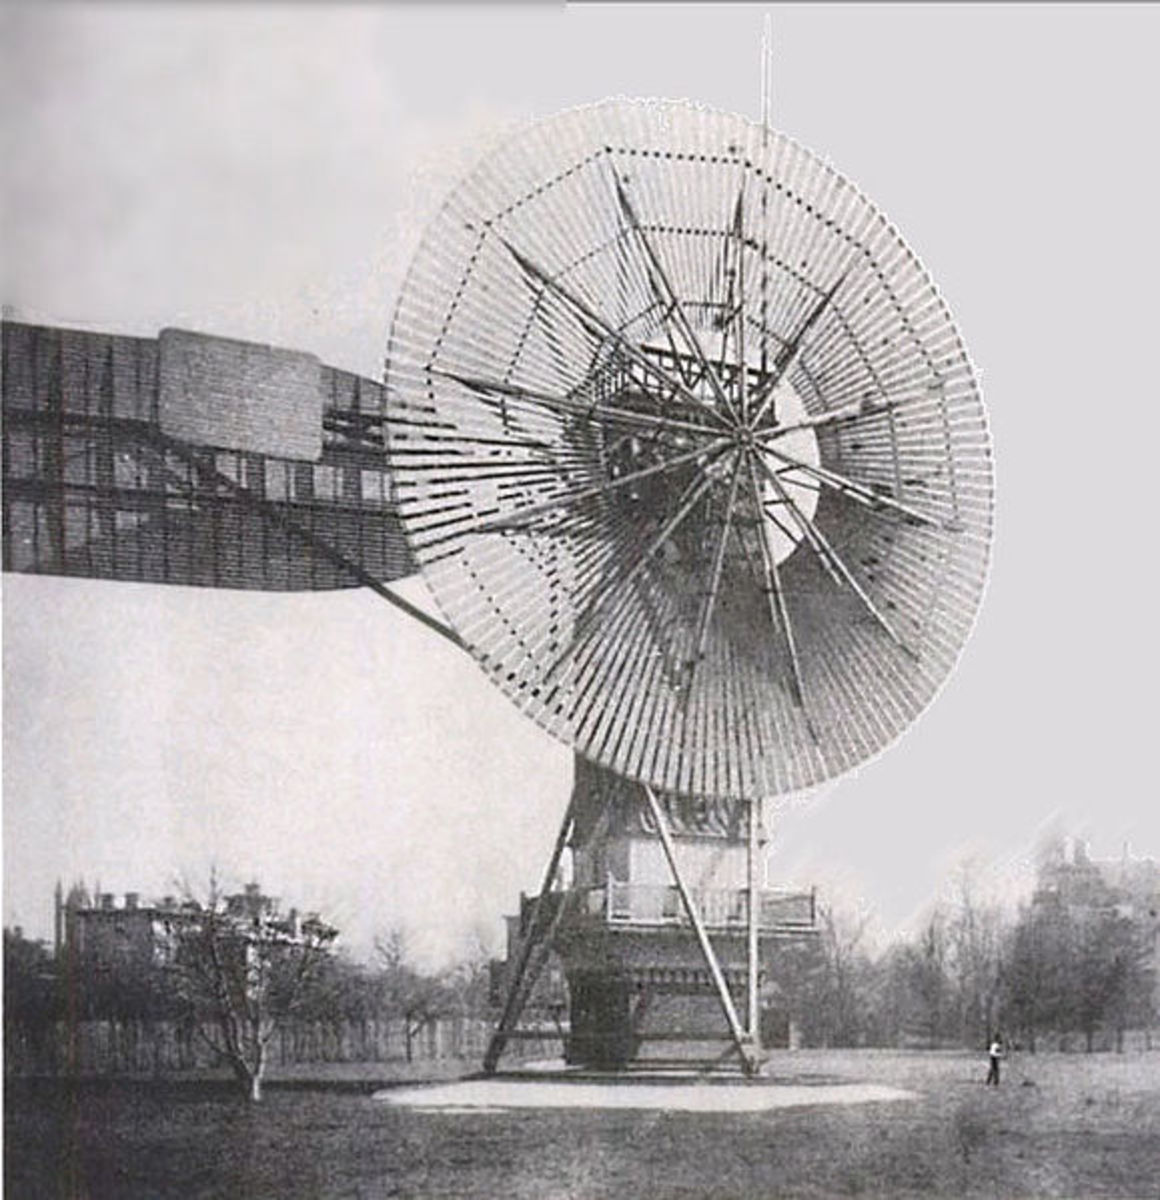 1888 -- Charles F. Brush's 60 ft, 80,000 lb turbine supplied 12kW power to 350 incandescent lights, 2 arc lights, and a number of motors at his home for 20 years.